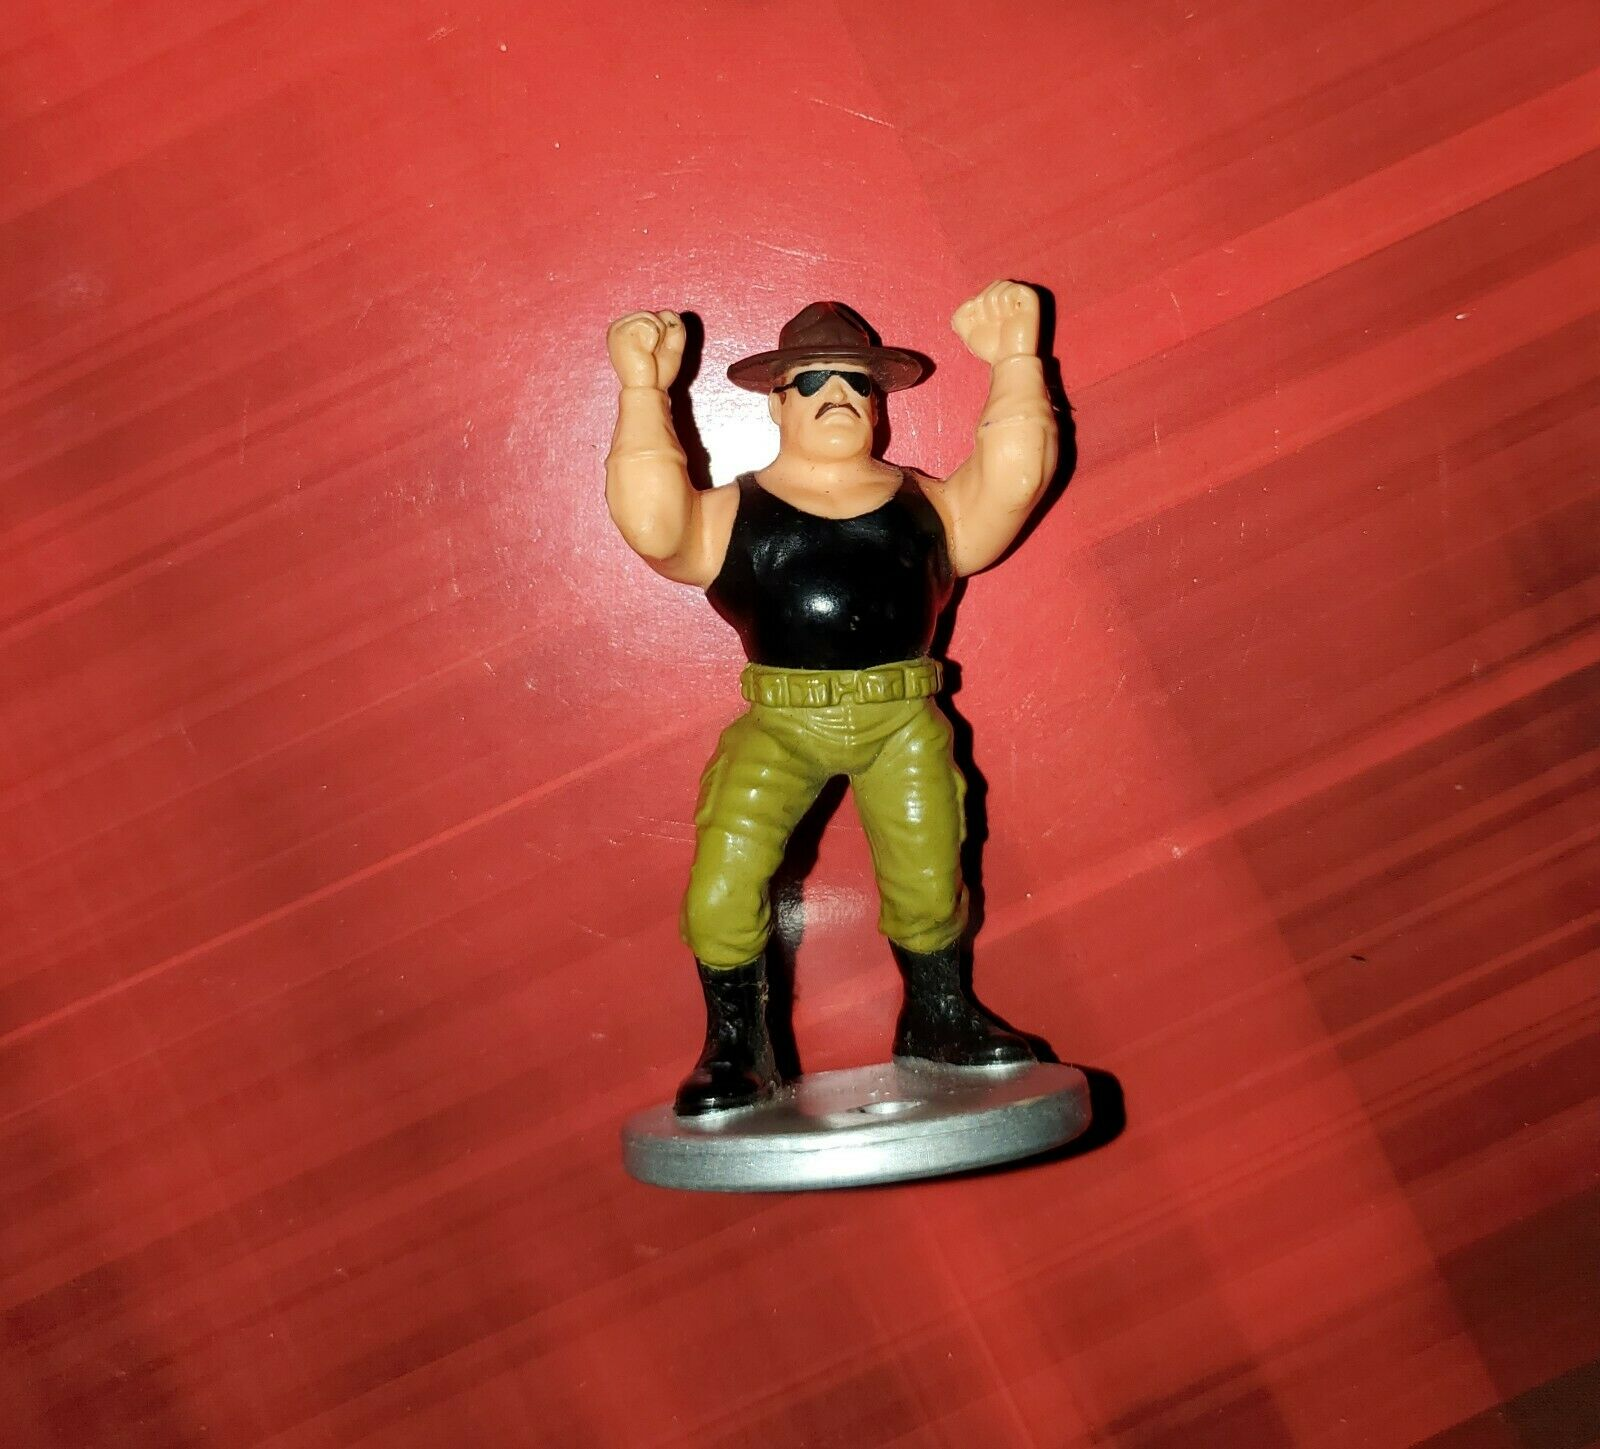 WWE WWF Sgt Slaughter Exclusive Hasbro Royal Rumble Mini Wrestling Figure